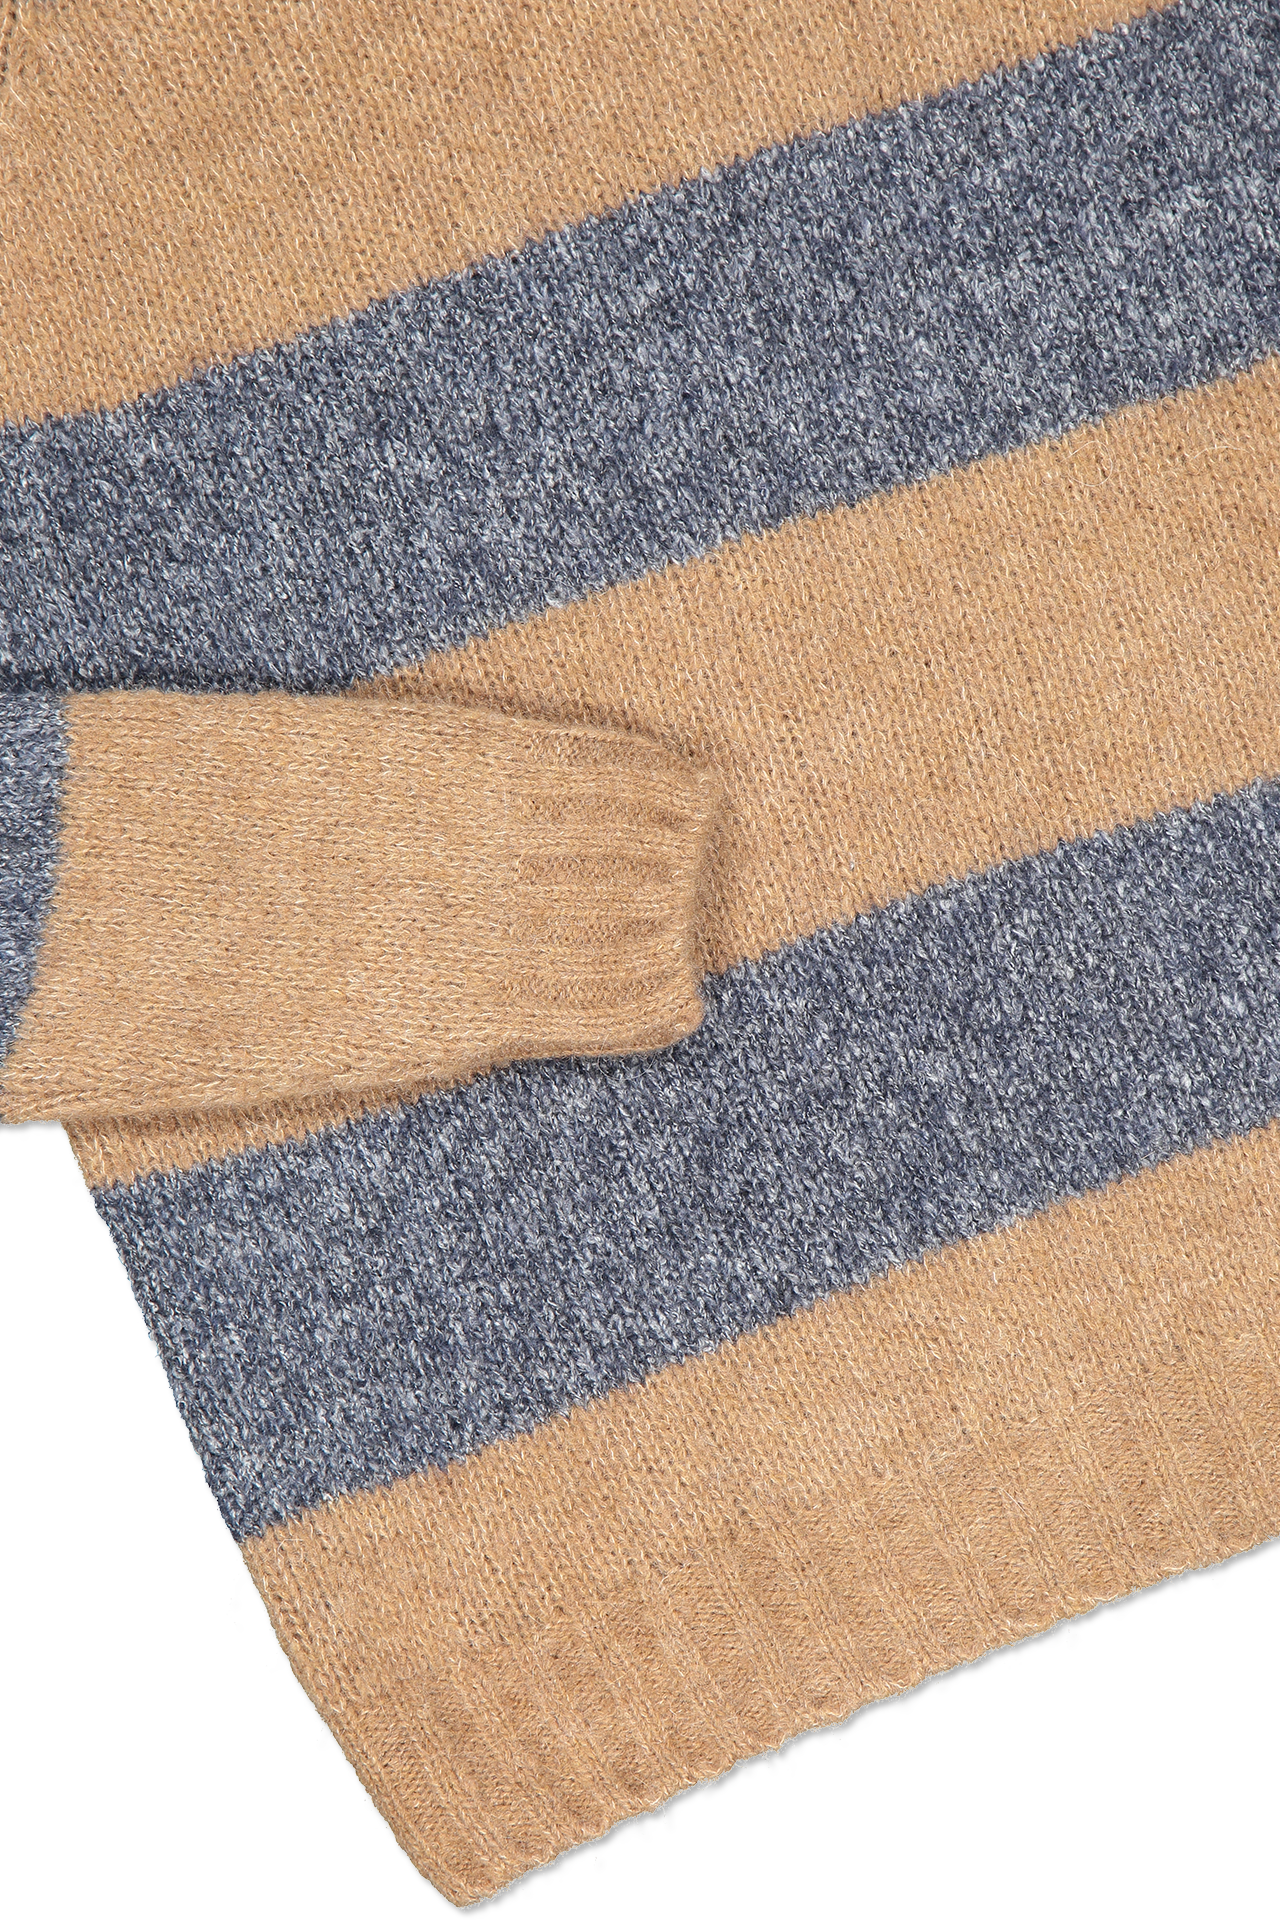 Hemline and cuff detail image of Eleventy Striped Crewneck Sweater